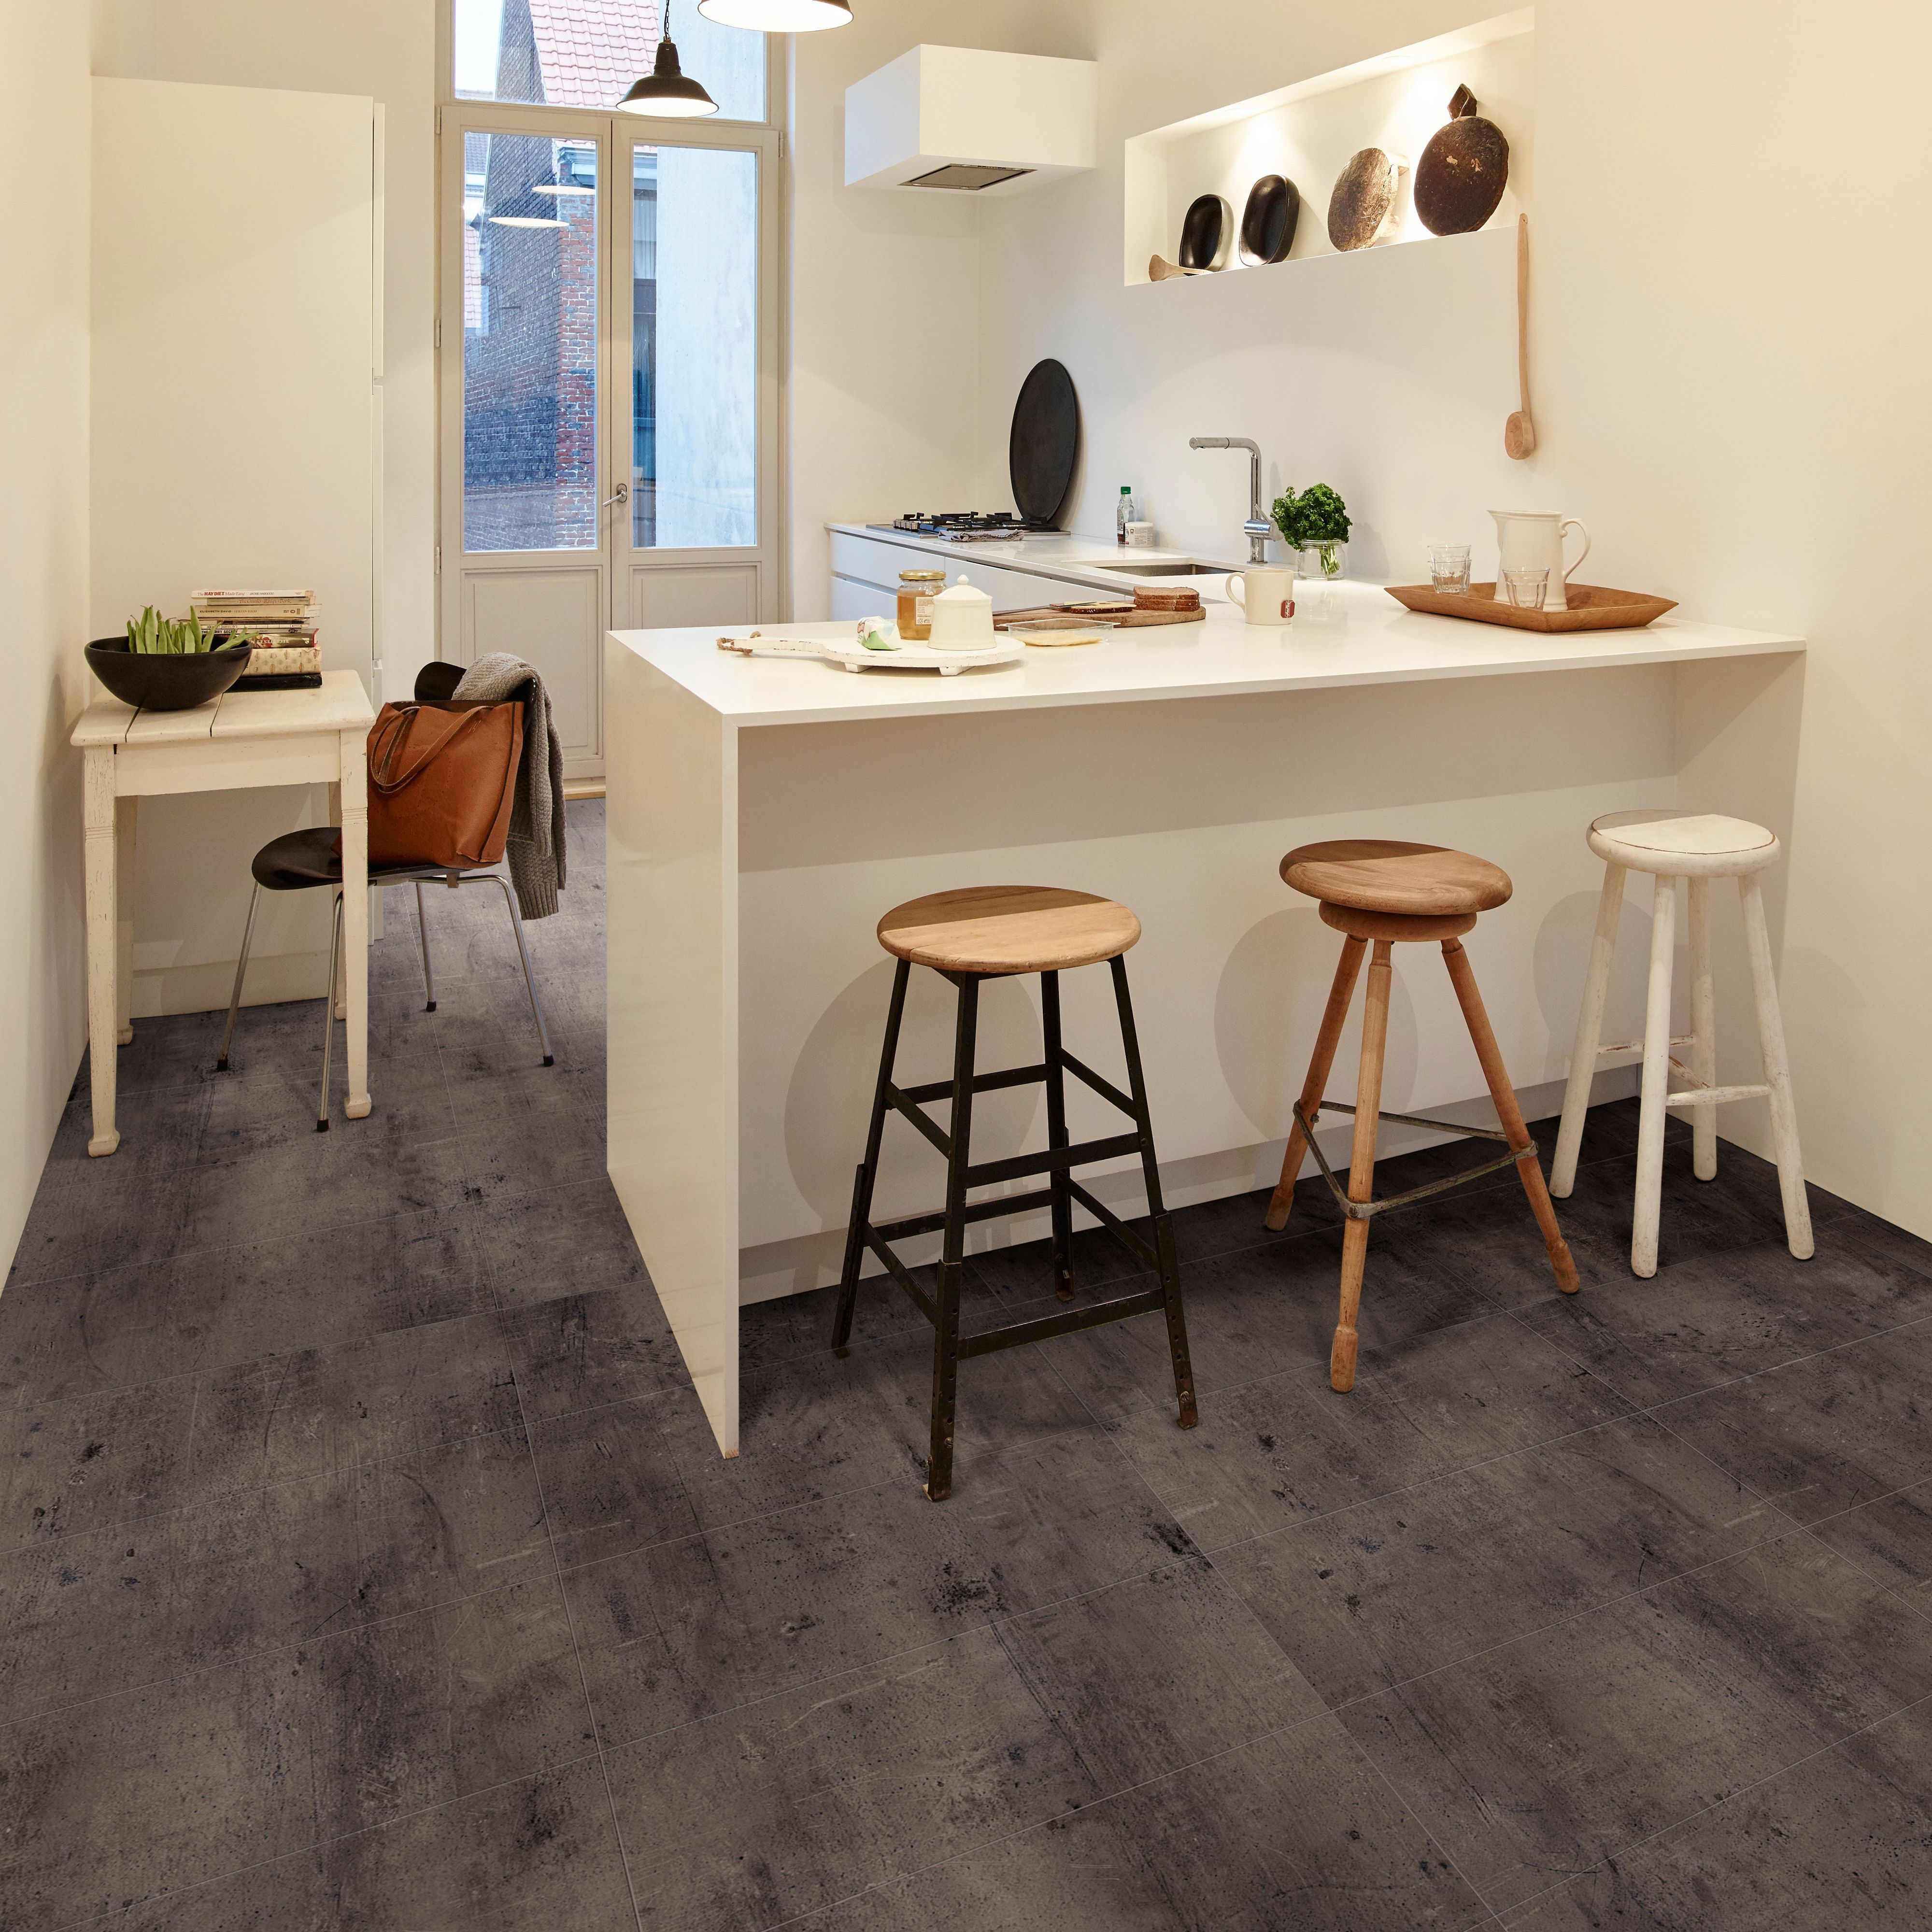 Natural carbon effect premium luxury vinyl click flooring 15m pack natural carbon effect premium luxury vinyl click flooring 15m pack departments diy at bq dailygadgetfo Image collections